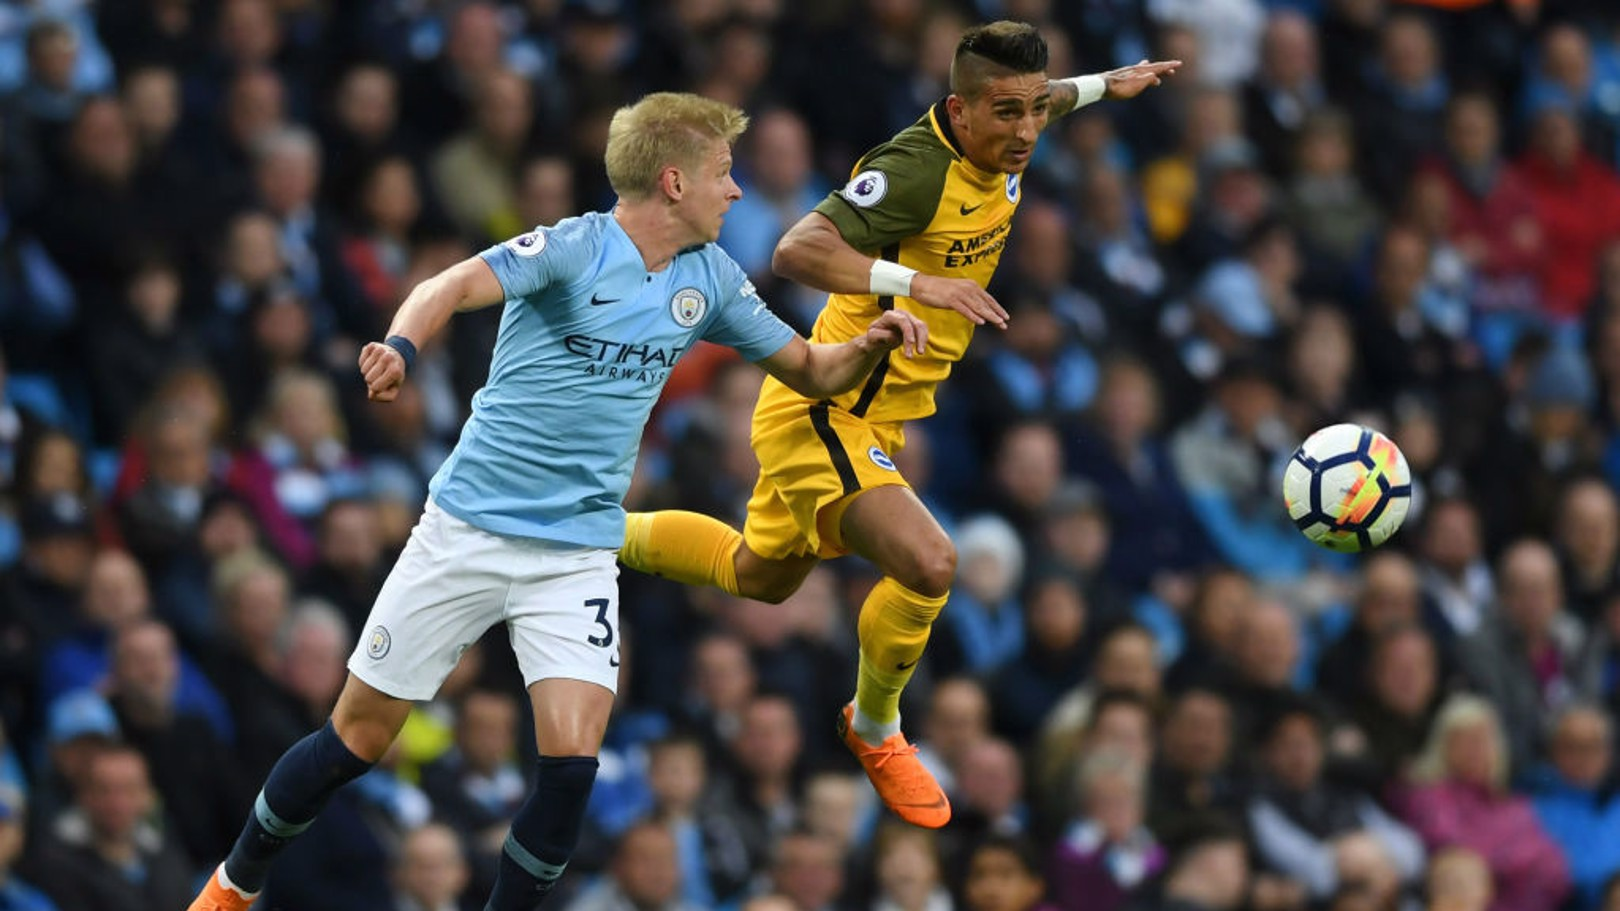 100 CLUB: Zinchenko says the players are focused on securing 3 points at Southampton on Sunday